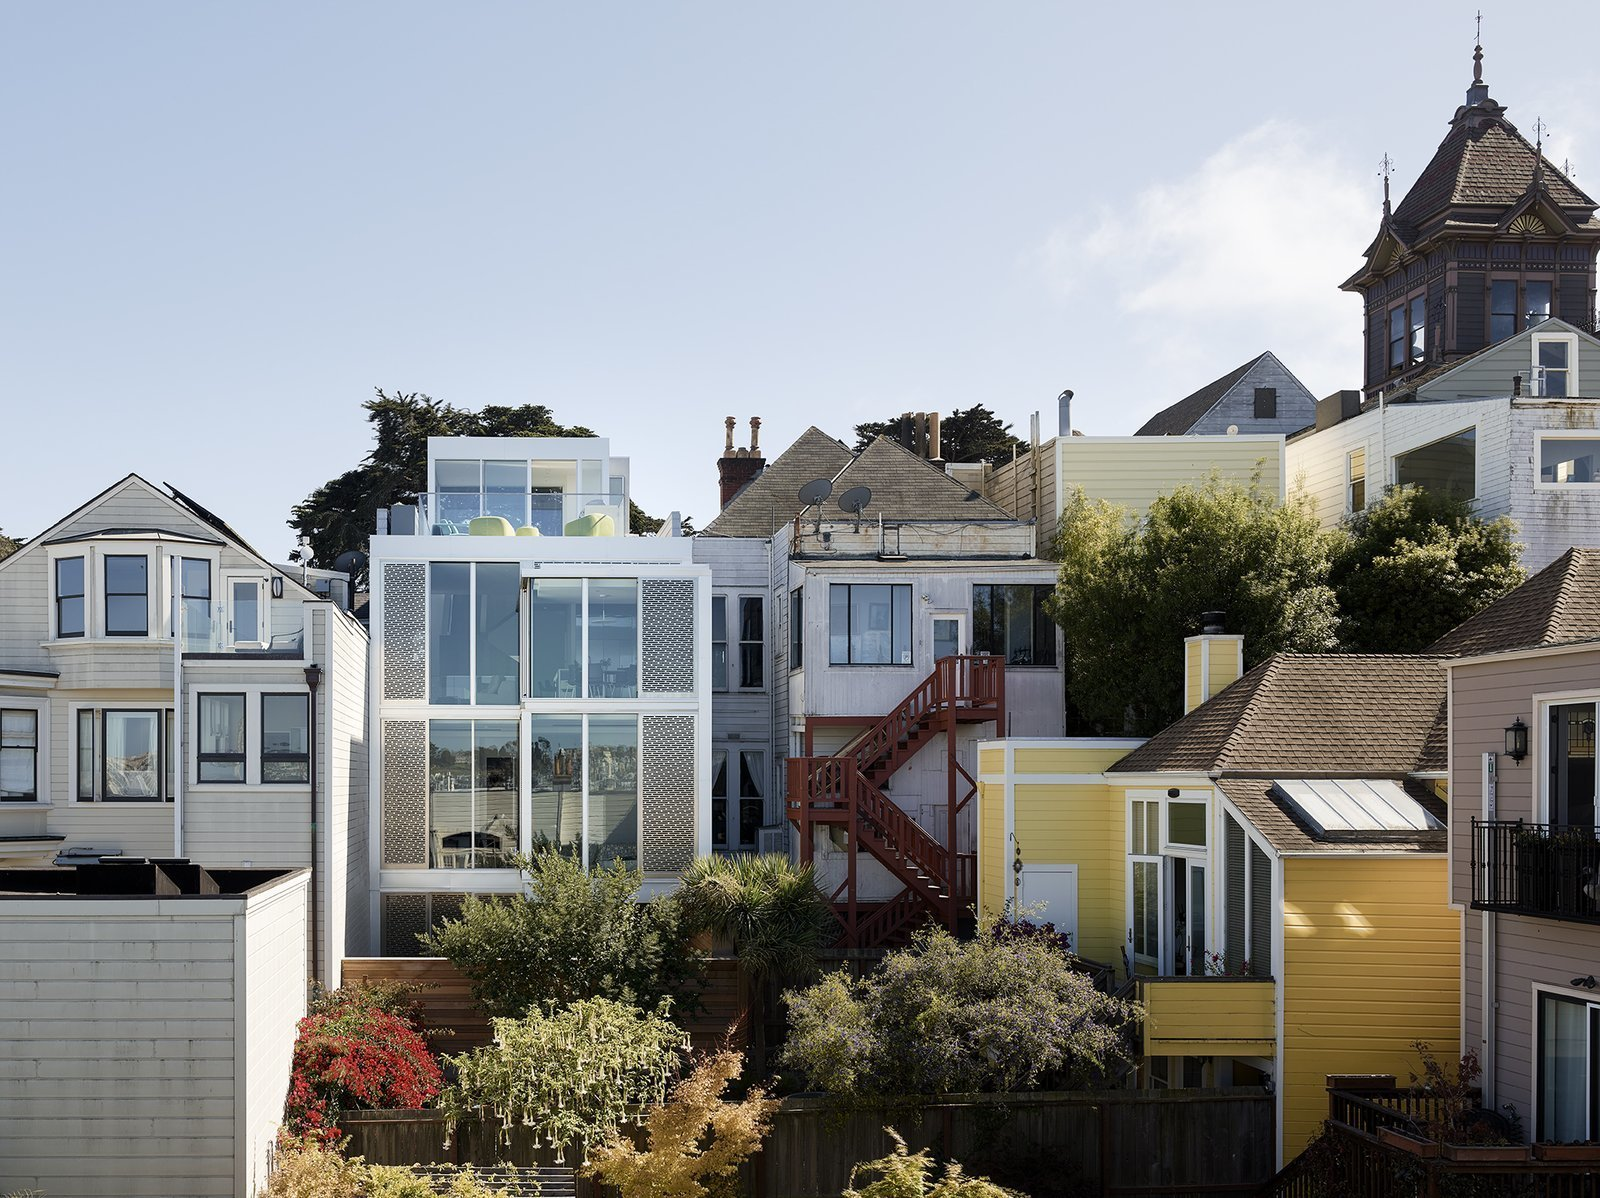 After: Alamo Square Residence Neighborhood view showing the back of the featured modern home renovation